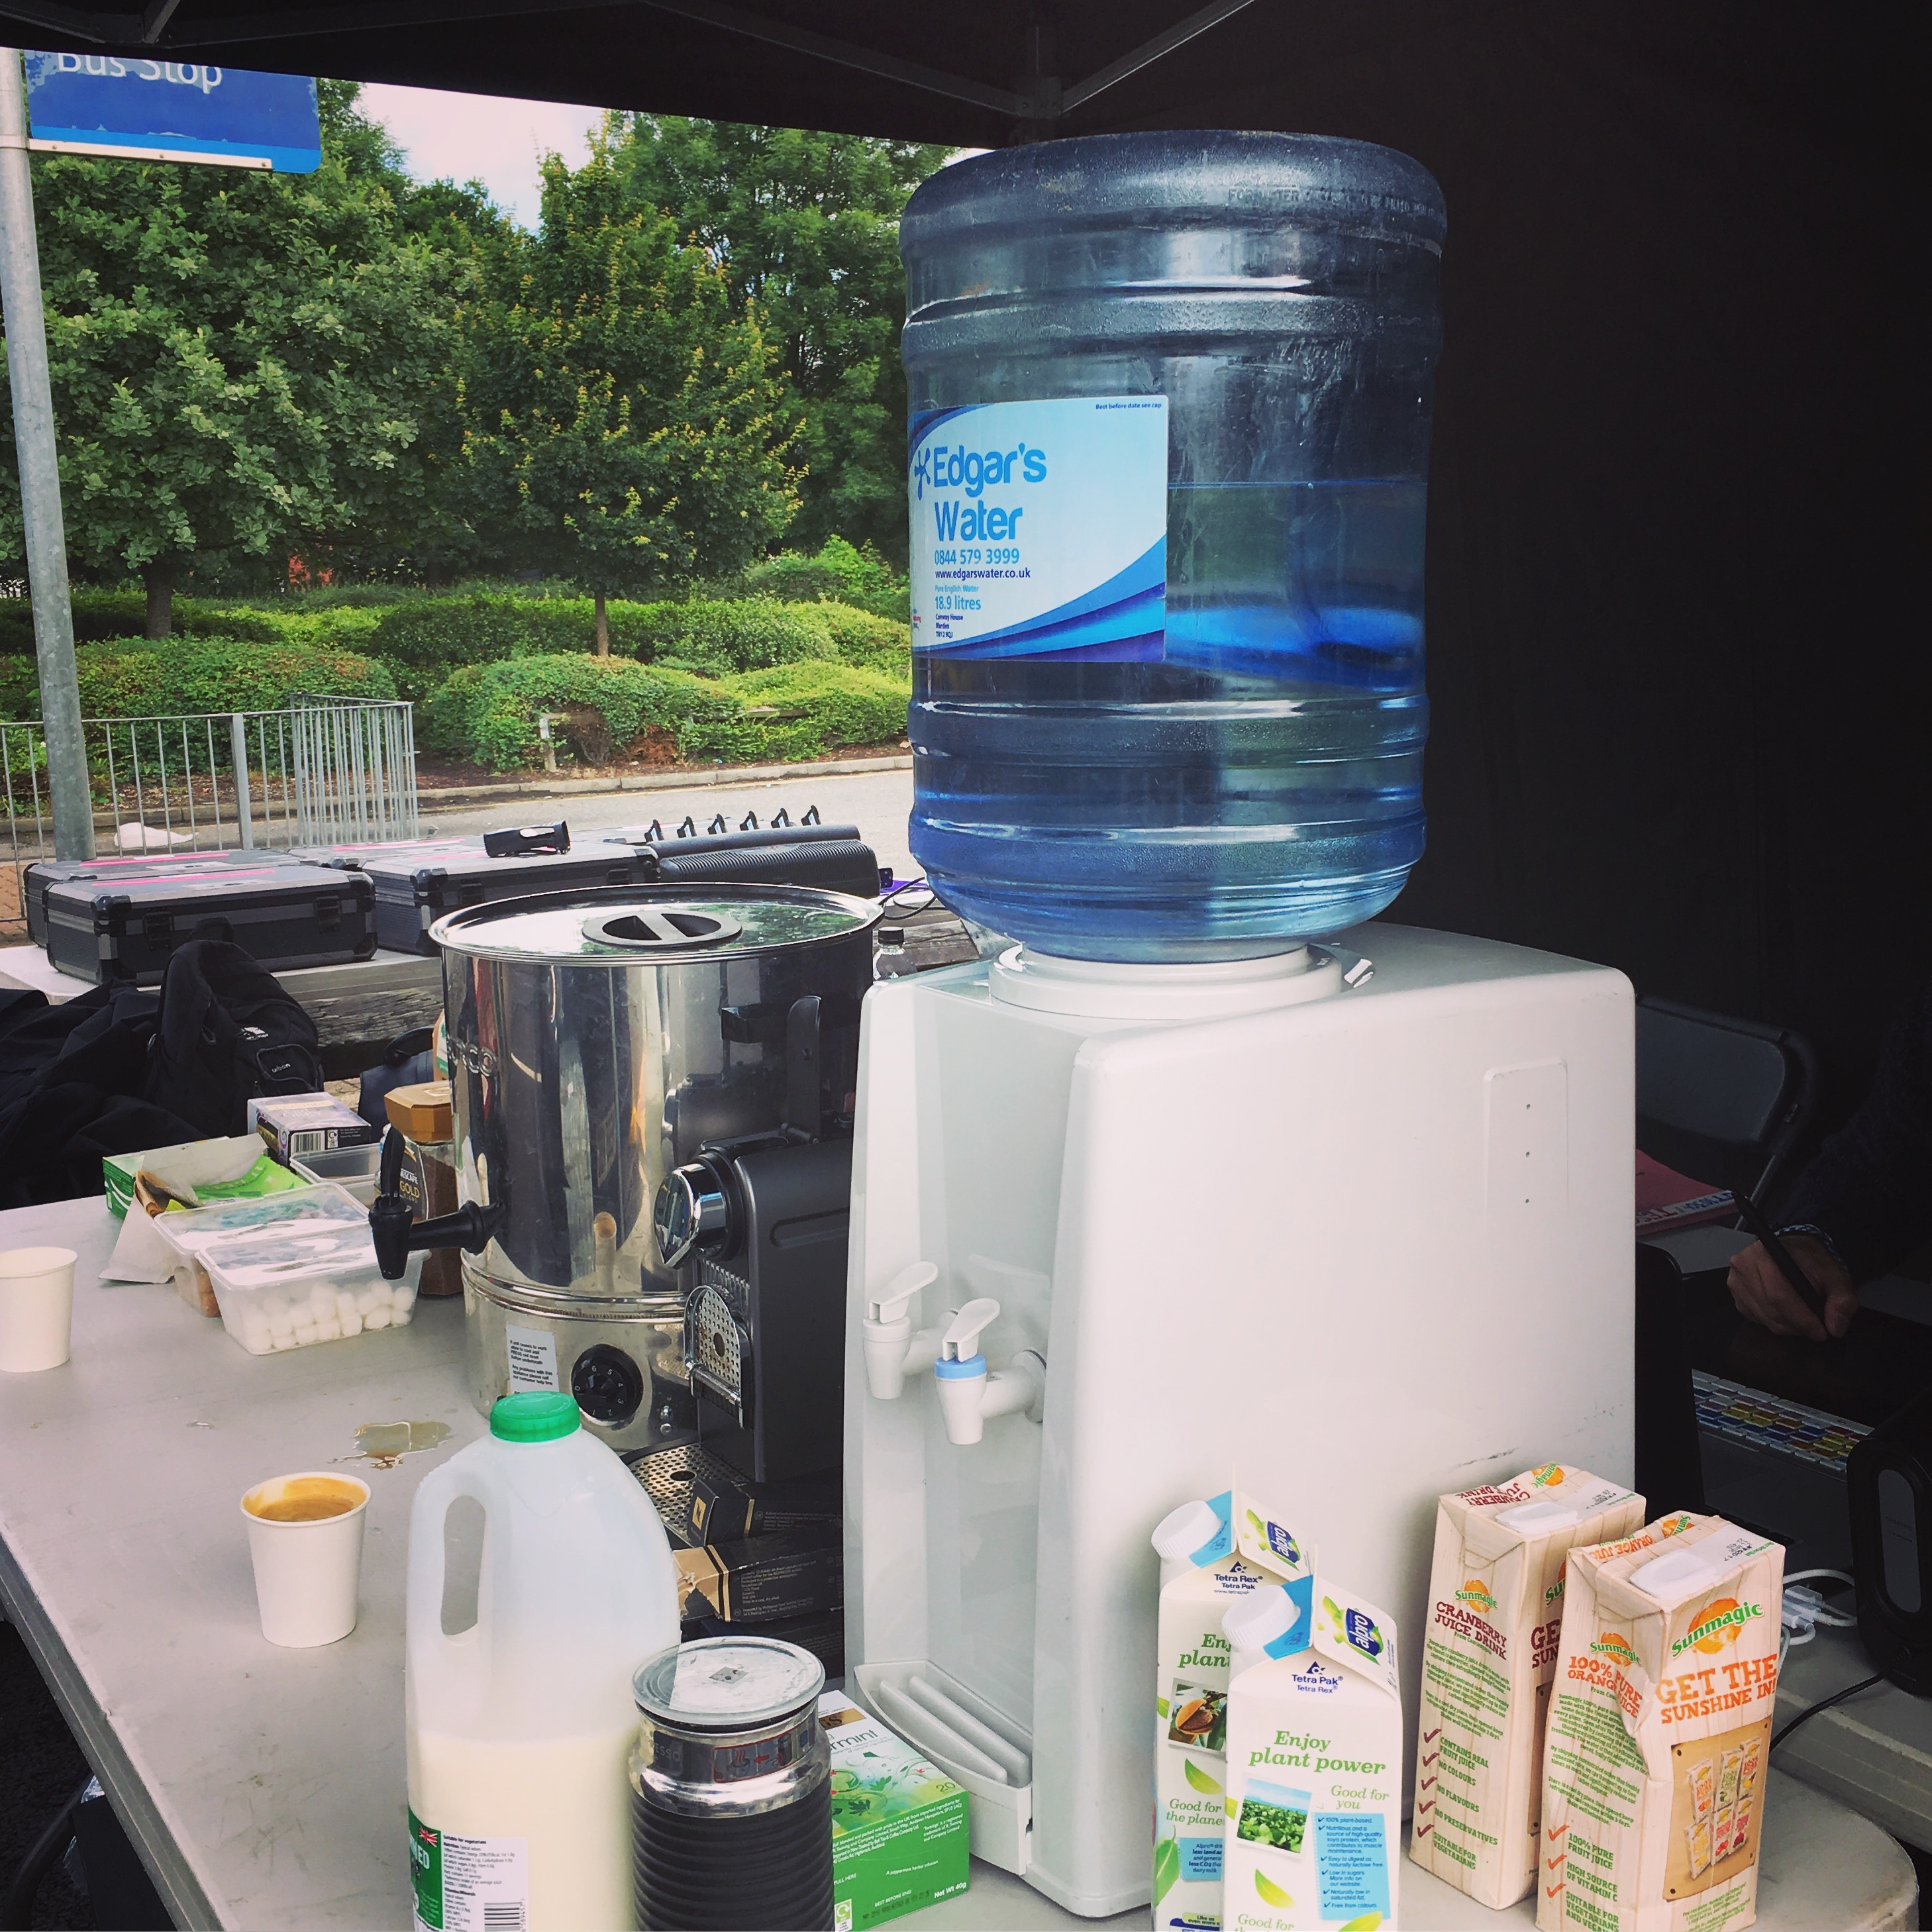 Get Set Hire water cooler in action